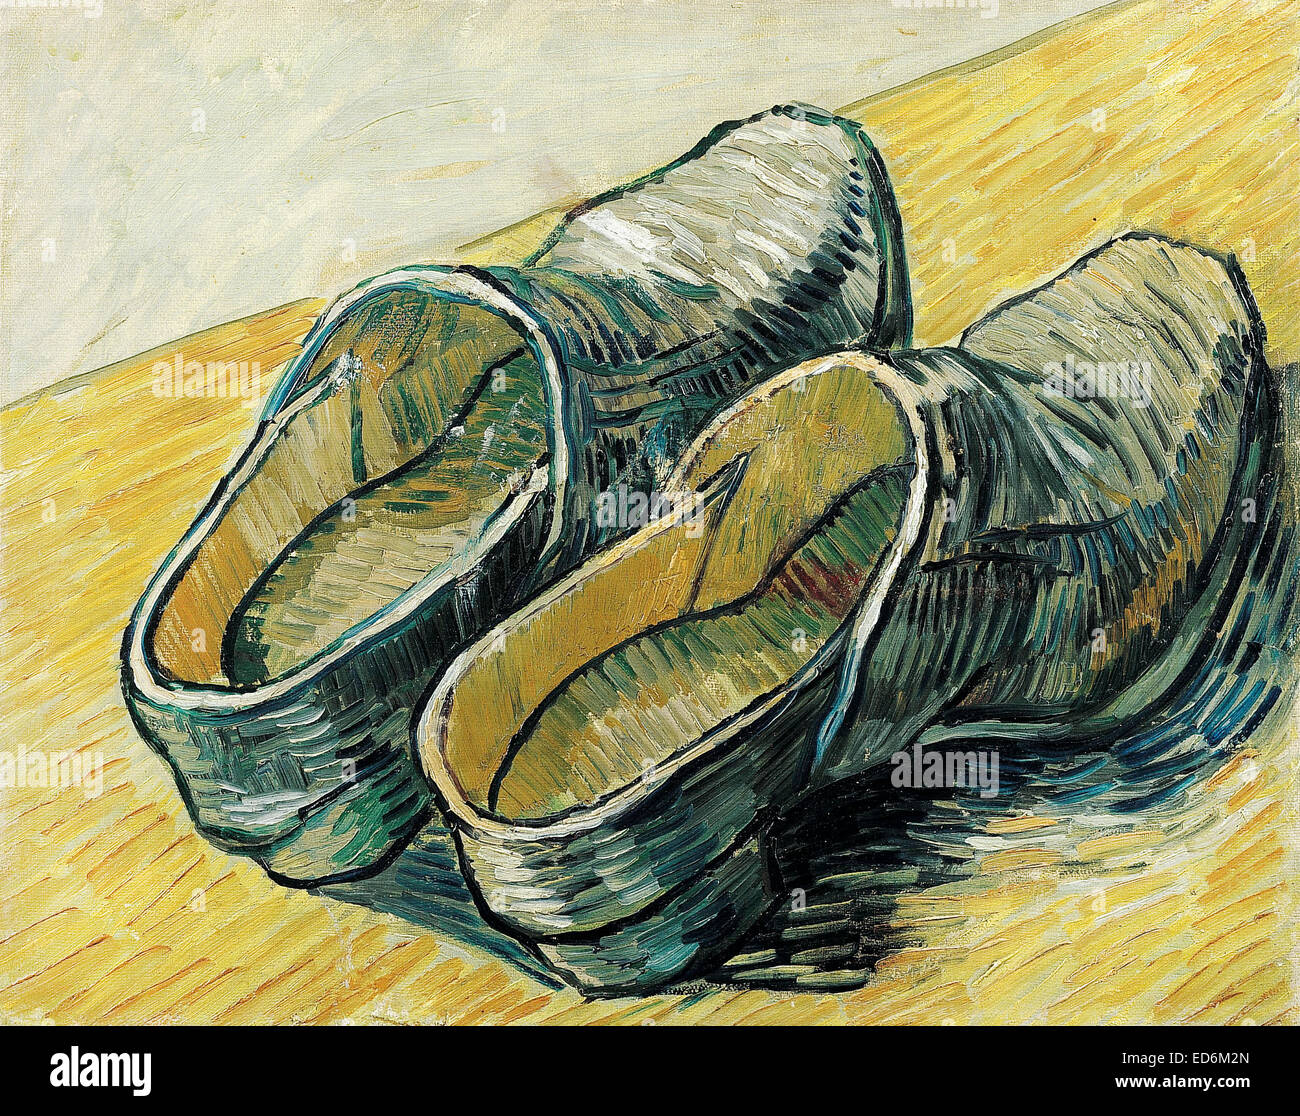 Vincent van Gogh, A Pair of Leather Clogs. 1888. Post-Impressionism. Oil on canvas. Van Gogh Museum, Amsterdam, - Stock Image